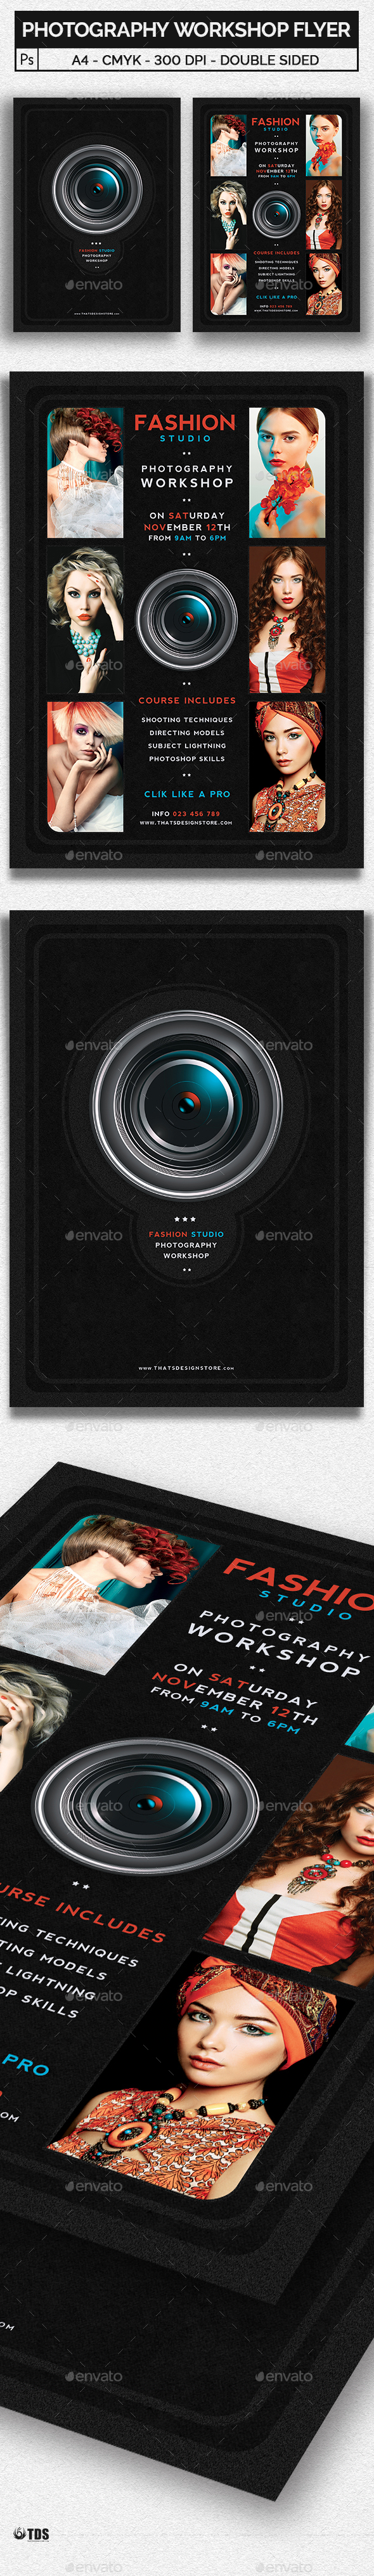 GraphicRiver Photography Workshop Flyer Template 20664841